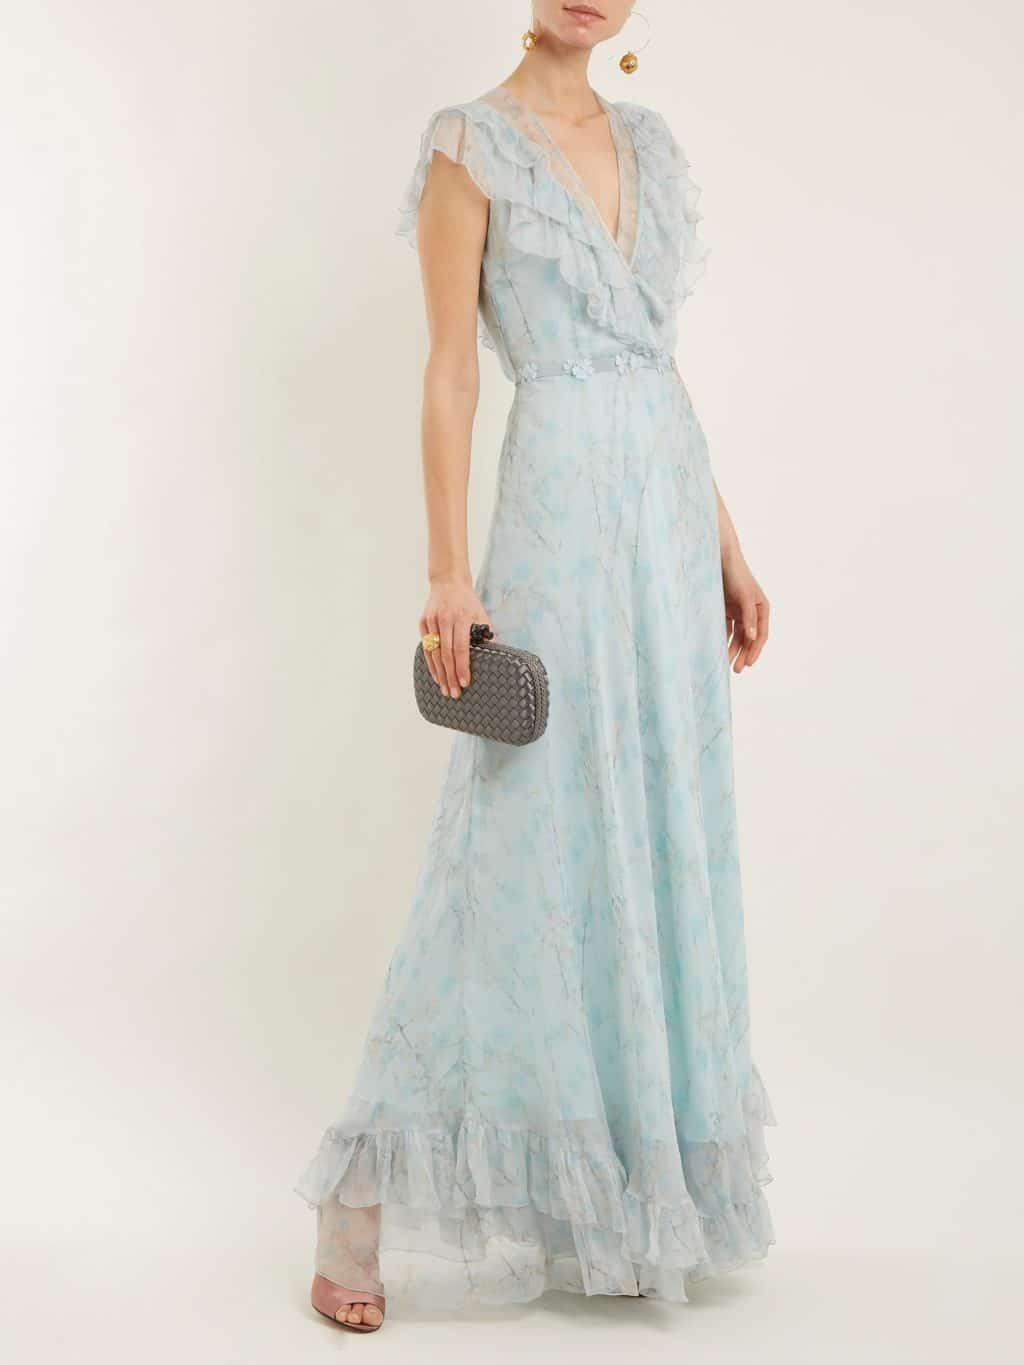 LUISA BECCARIA Silk Chiffon Light Blue / Floral Printed Gown